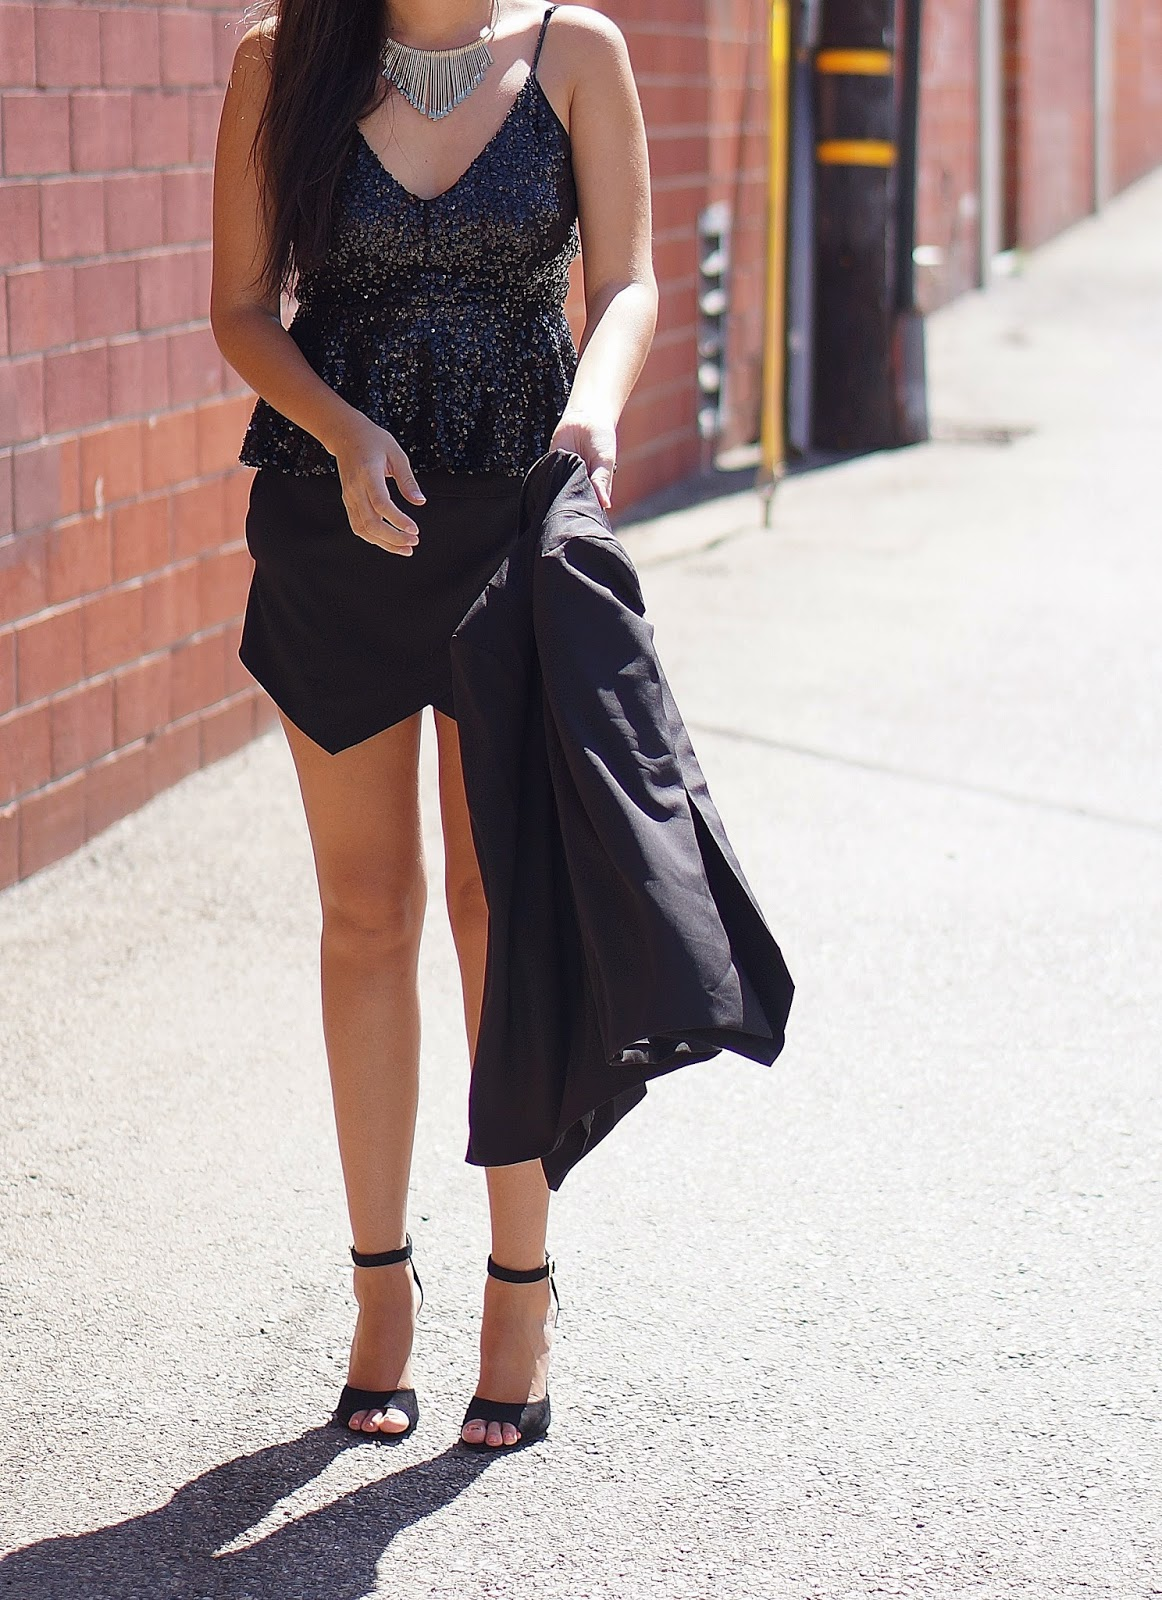 Sheinside black cape, Penny Shoemint Heels, Express Skort